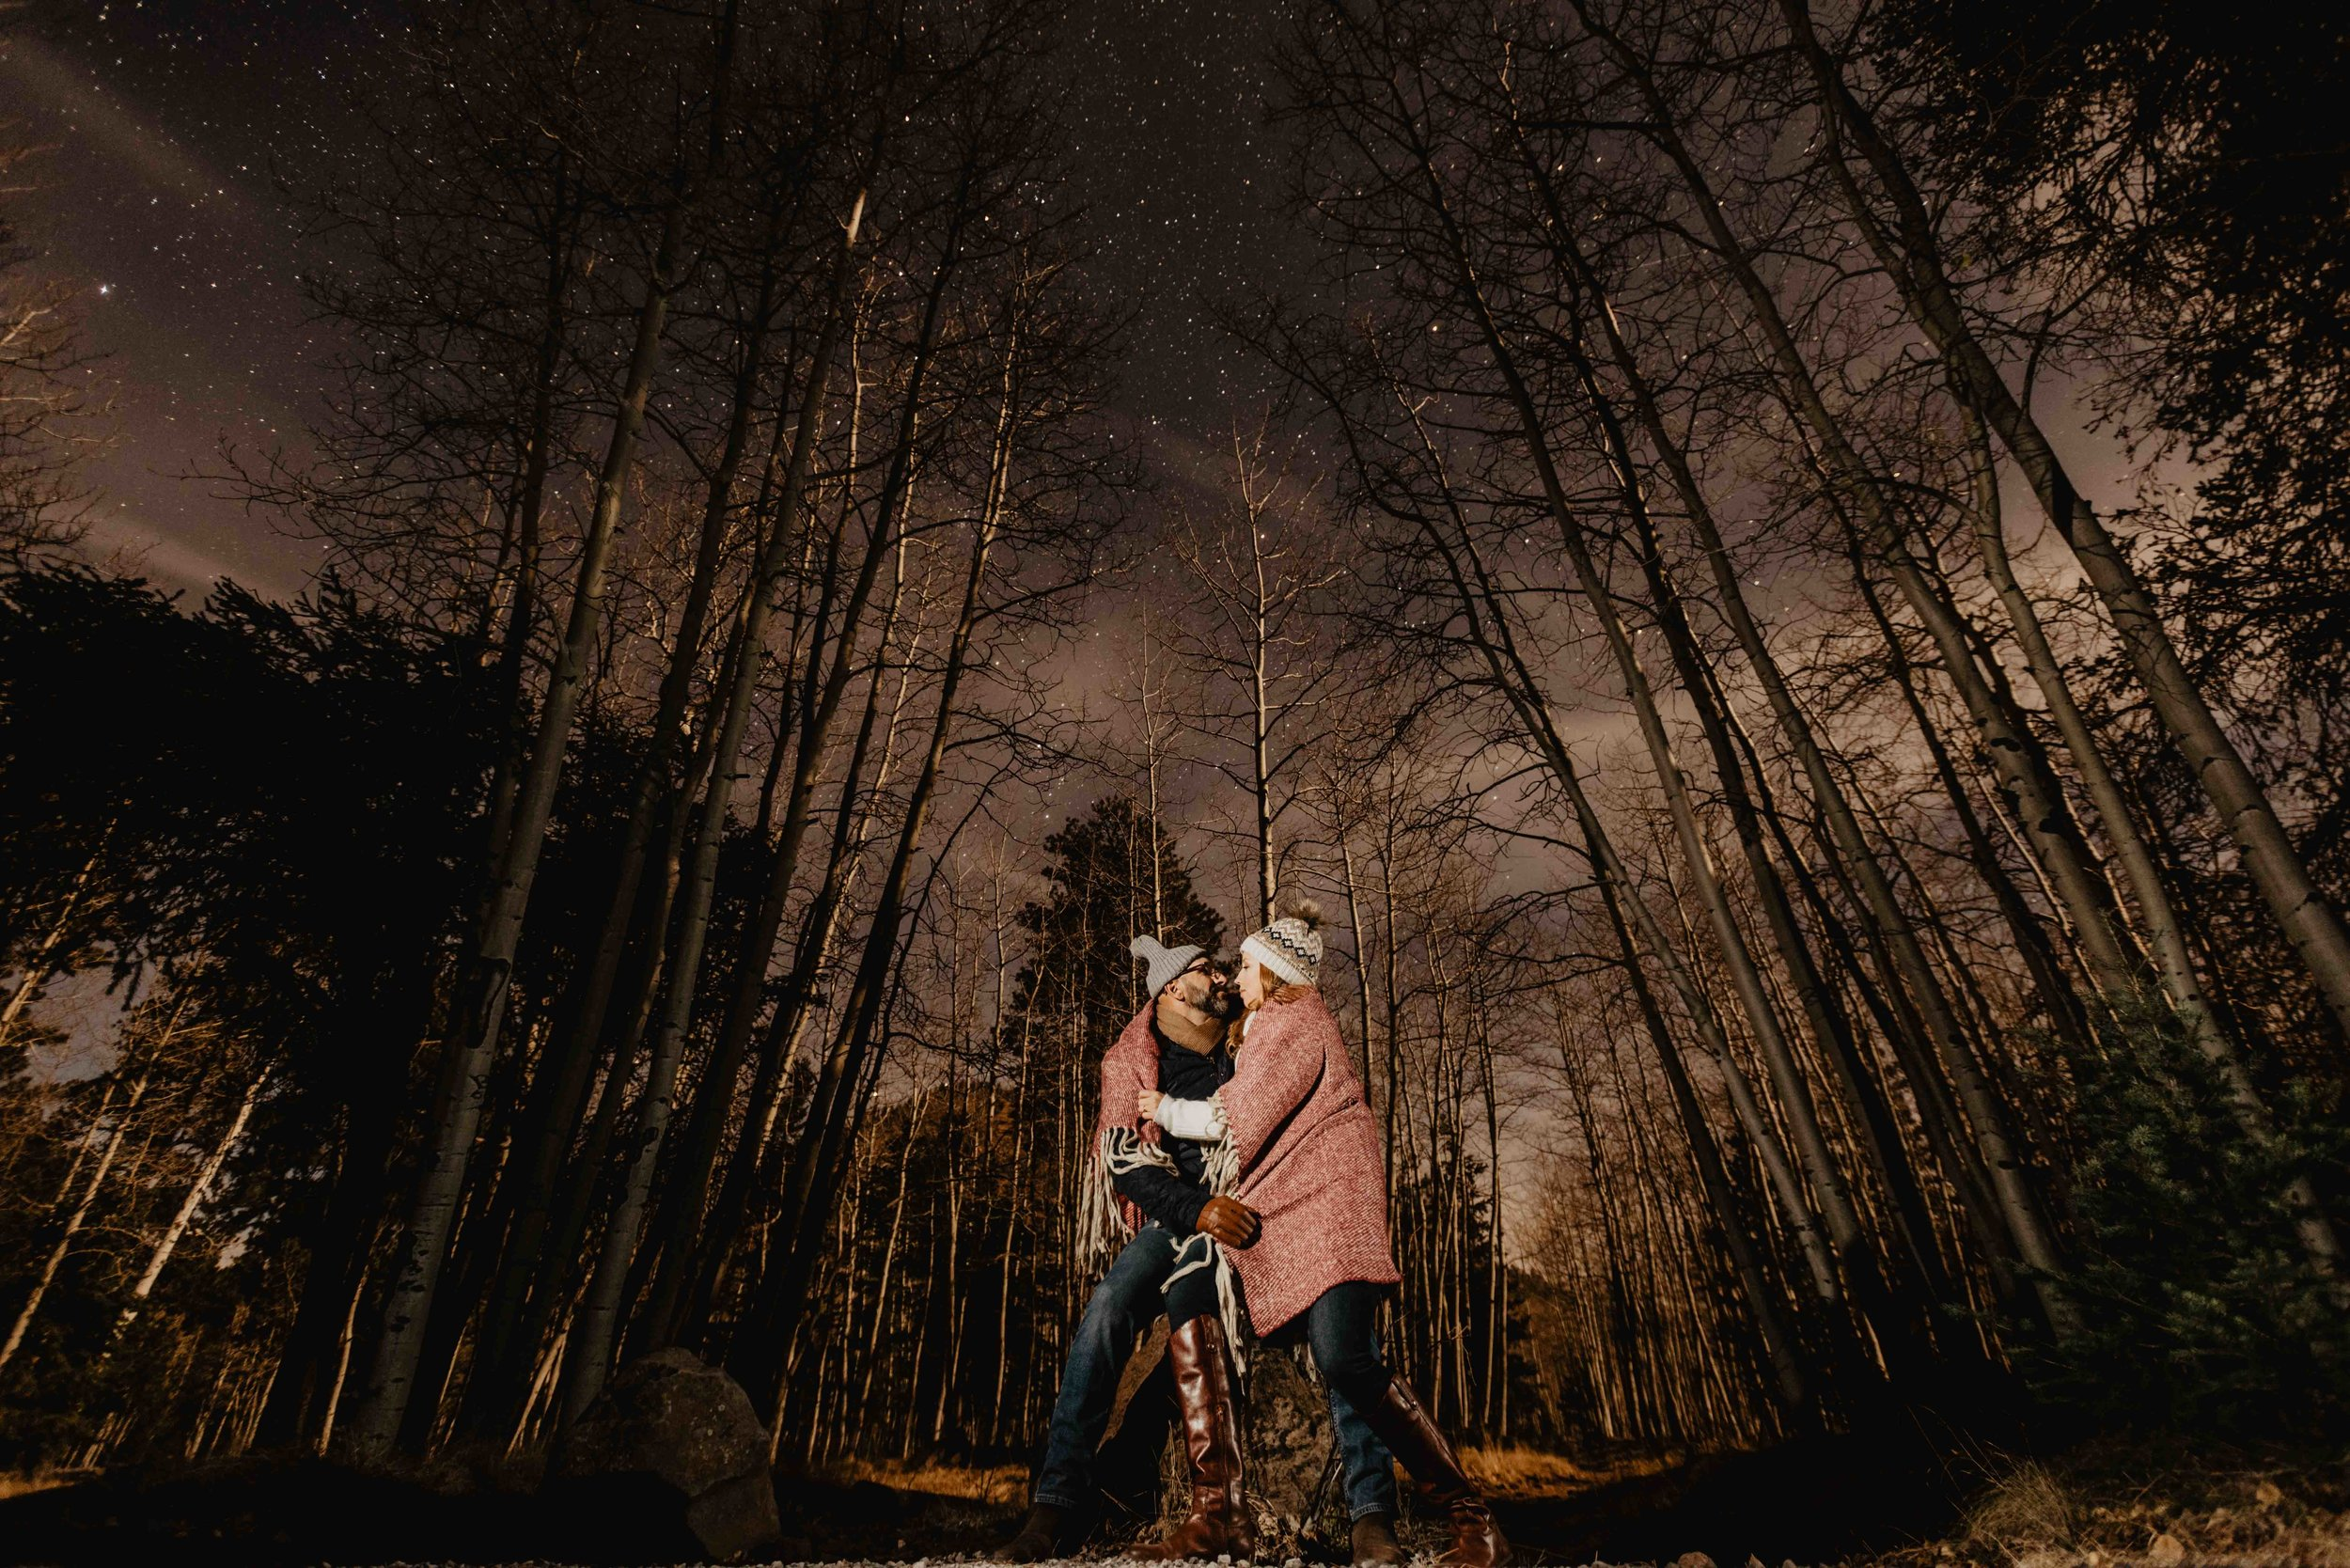 Night Photography - Anniversary Session in Flagstaff, AZ under the stars